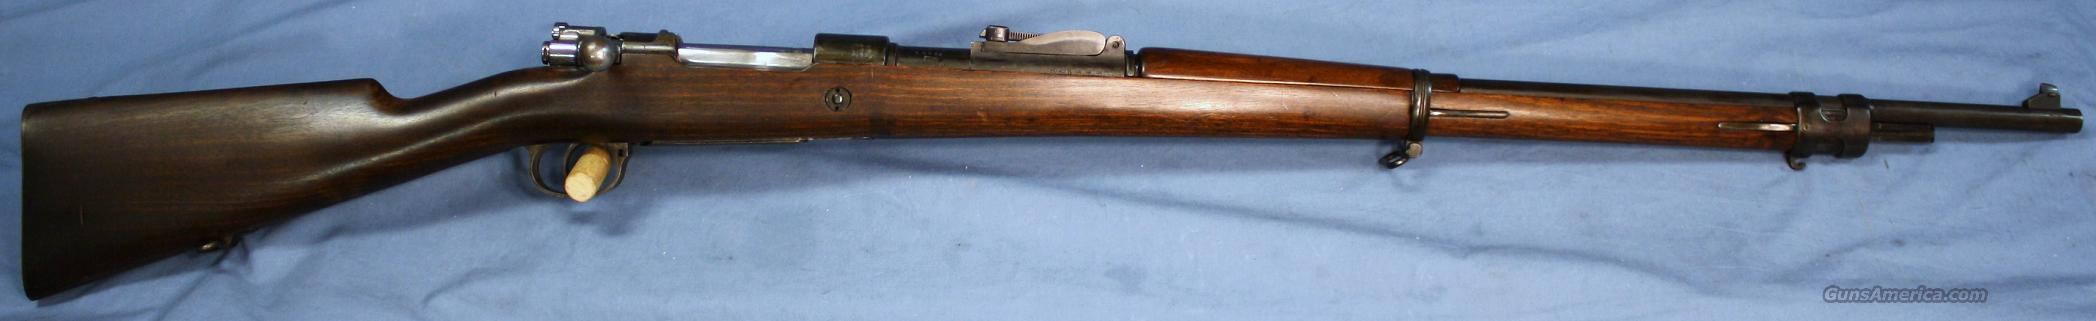 Mauser GEW 98 Spanish Rebuild Bolt Action Rifle 7x57mm Mauser  Guns > Rifles > Mauser Rifles > Spanish